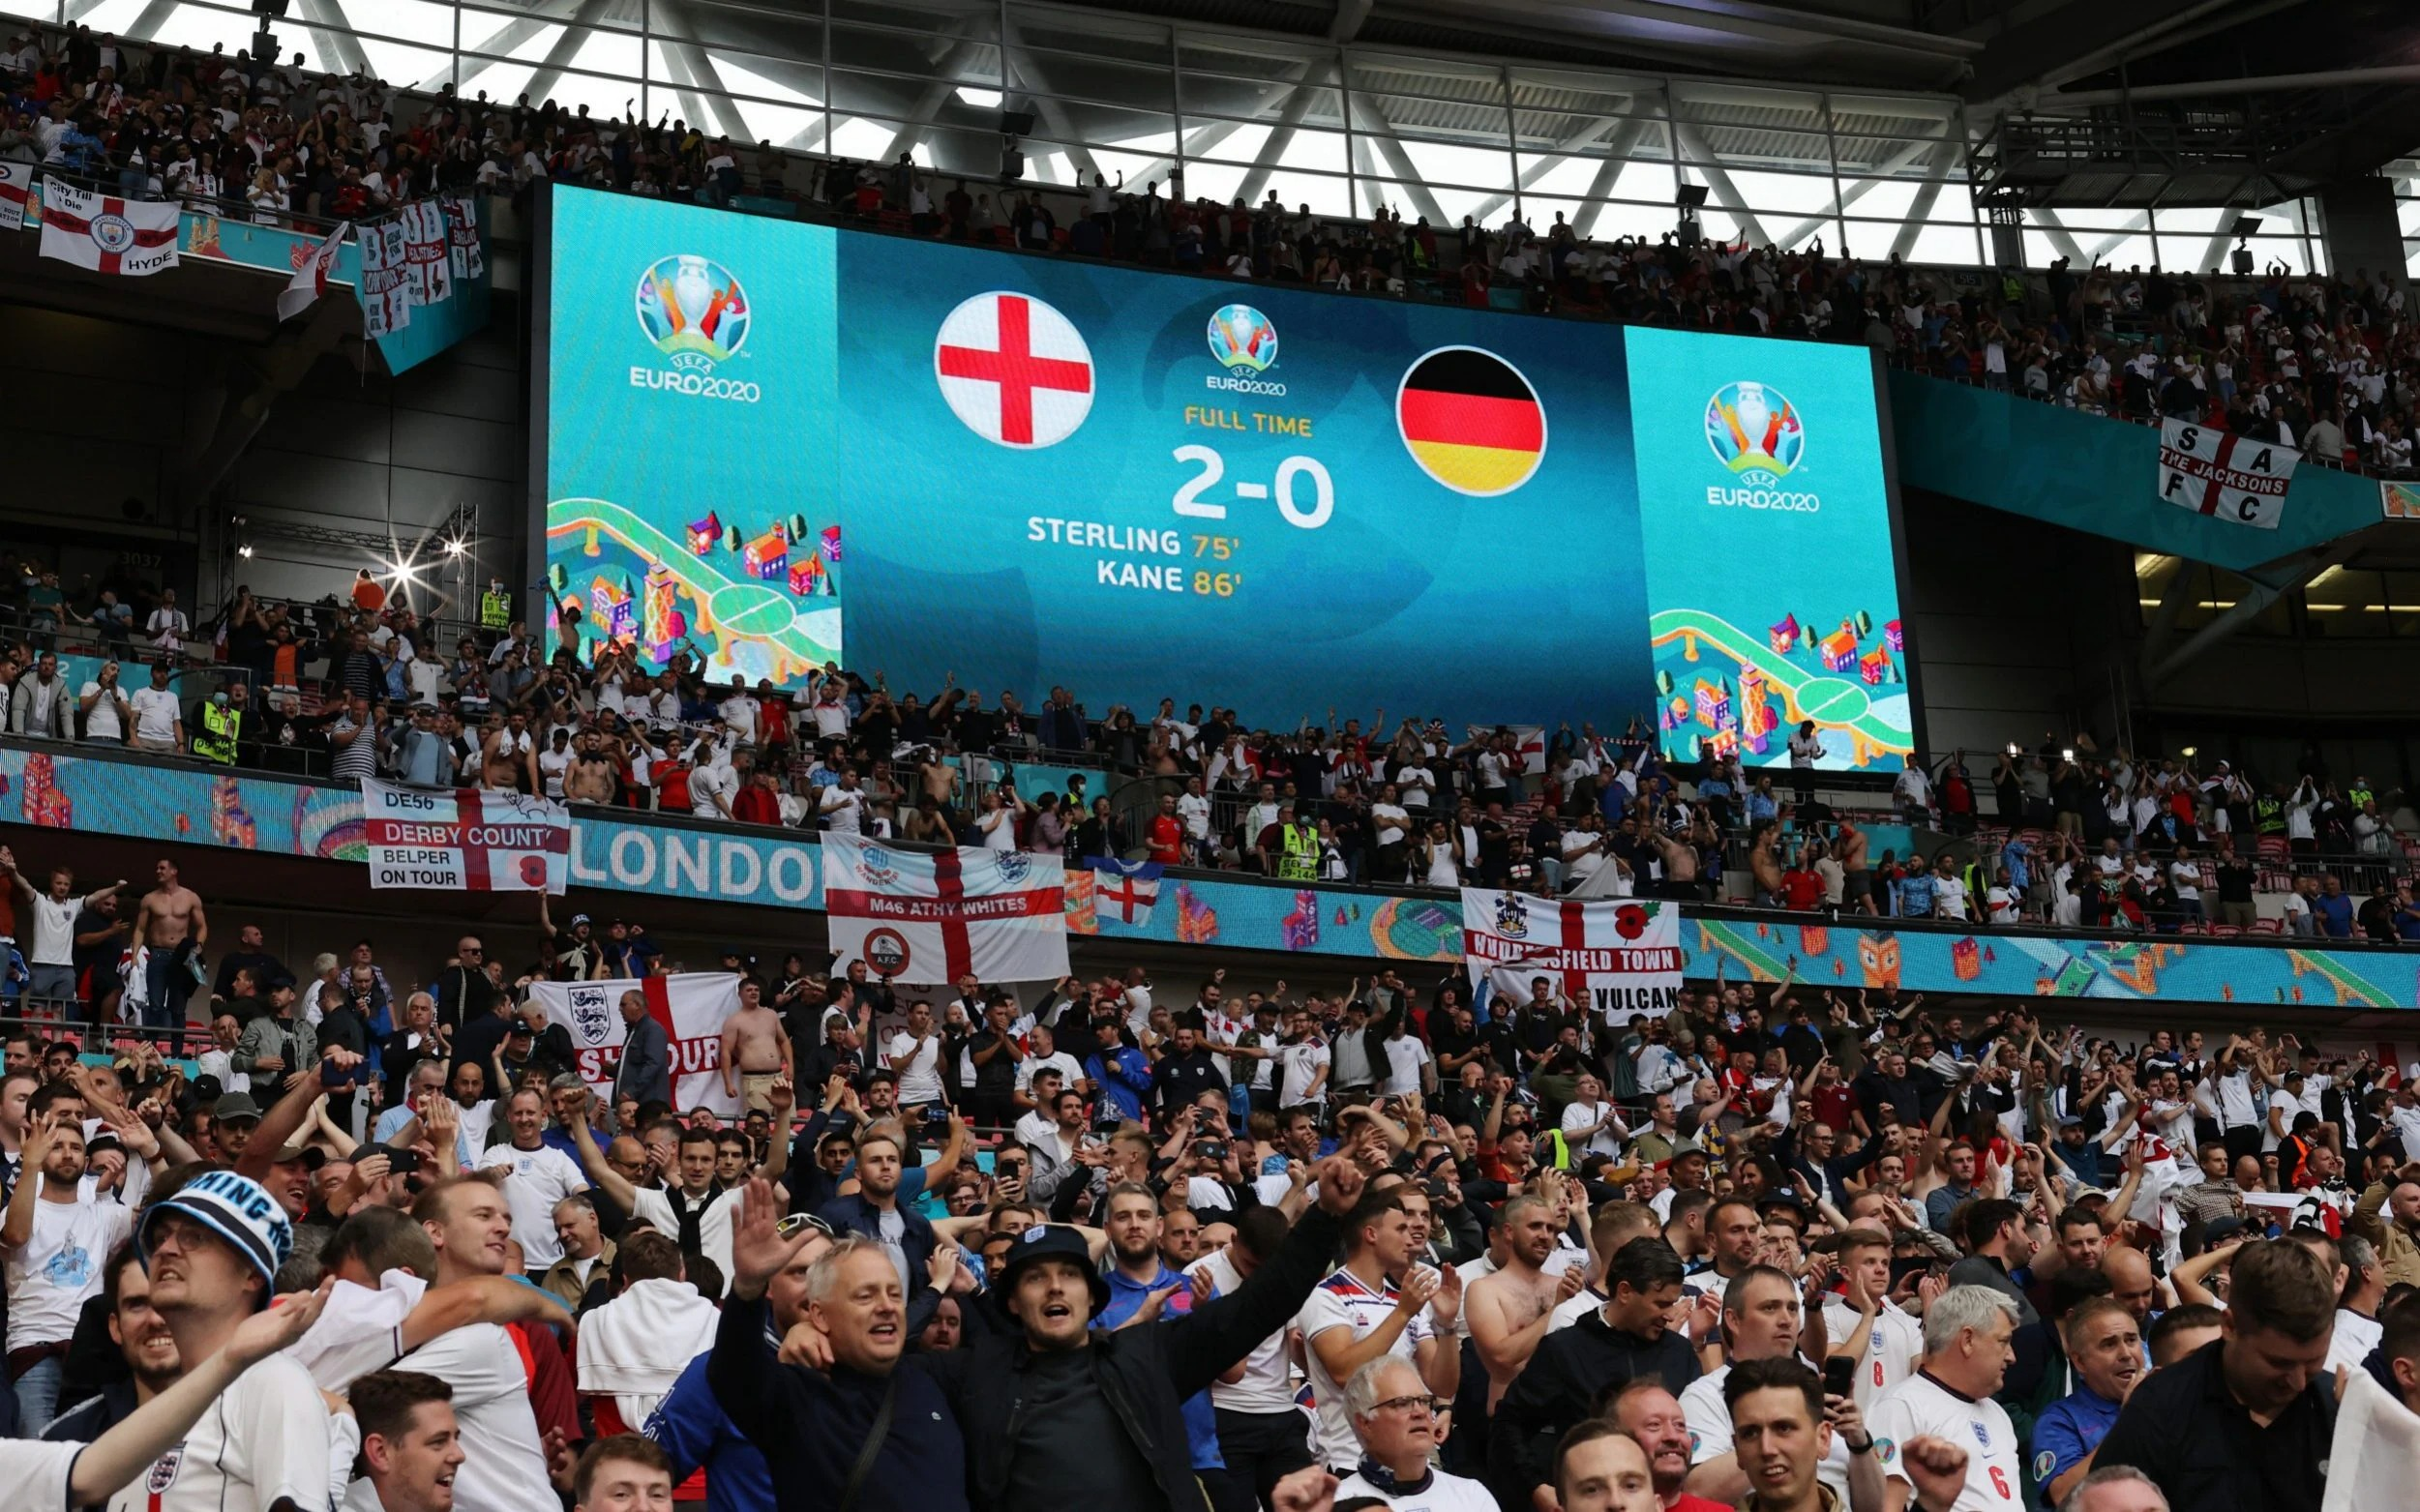 Euro 2020 crowds driving rise in COVID-19 infections, says WHO